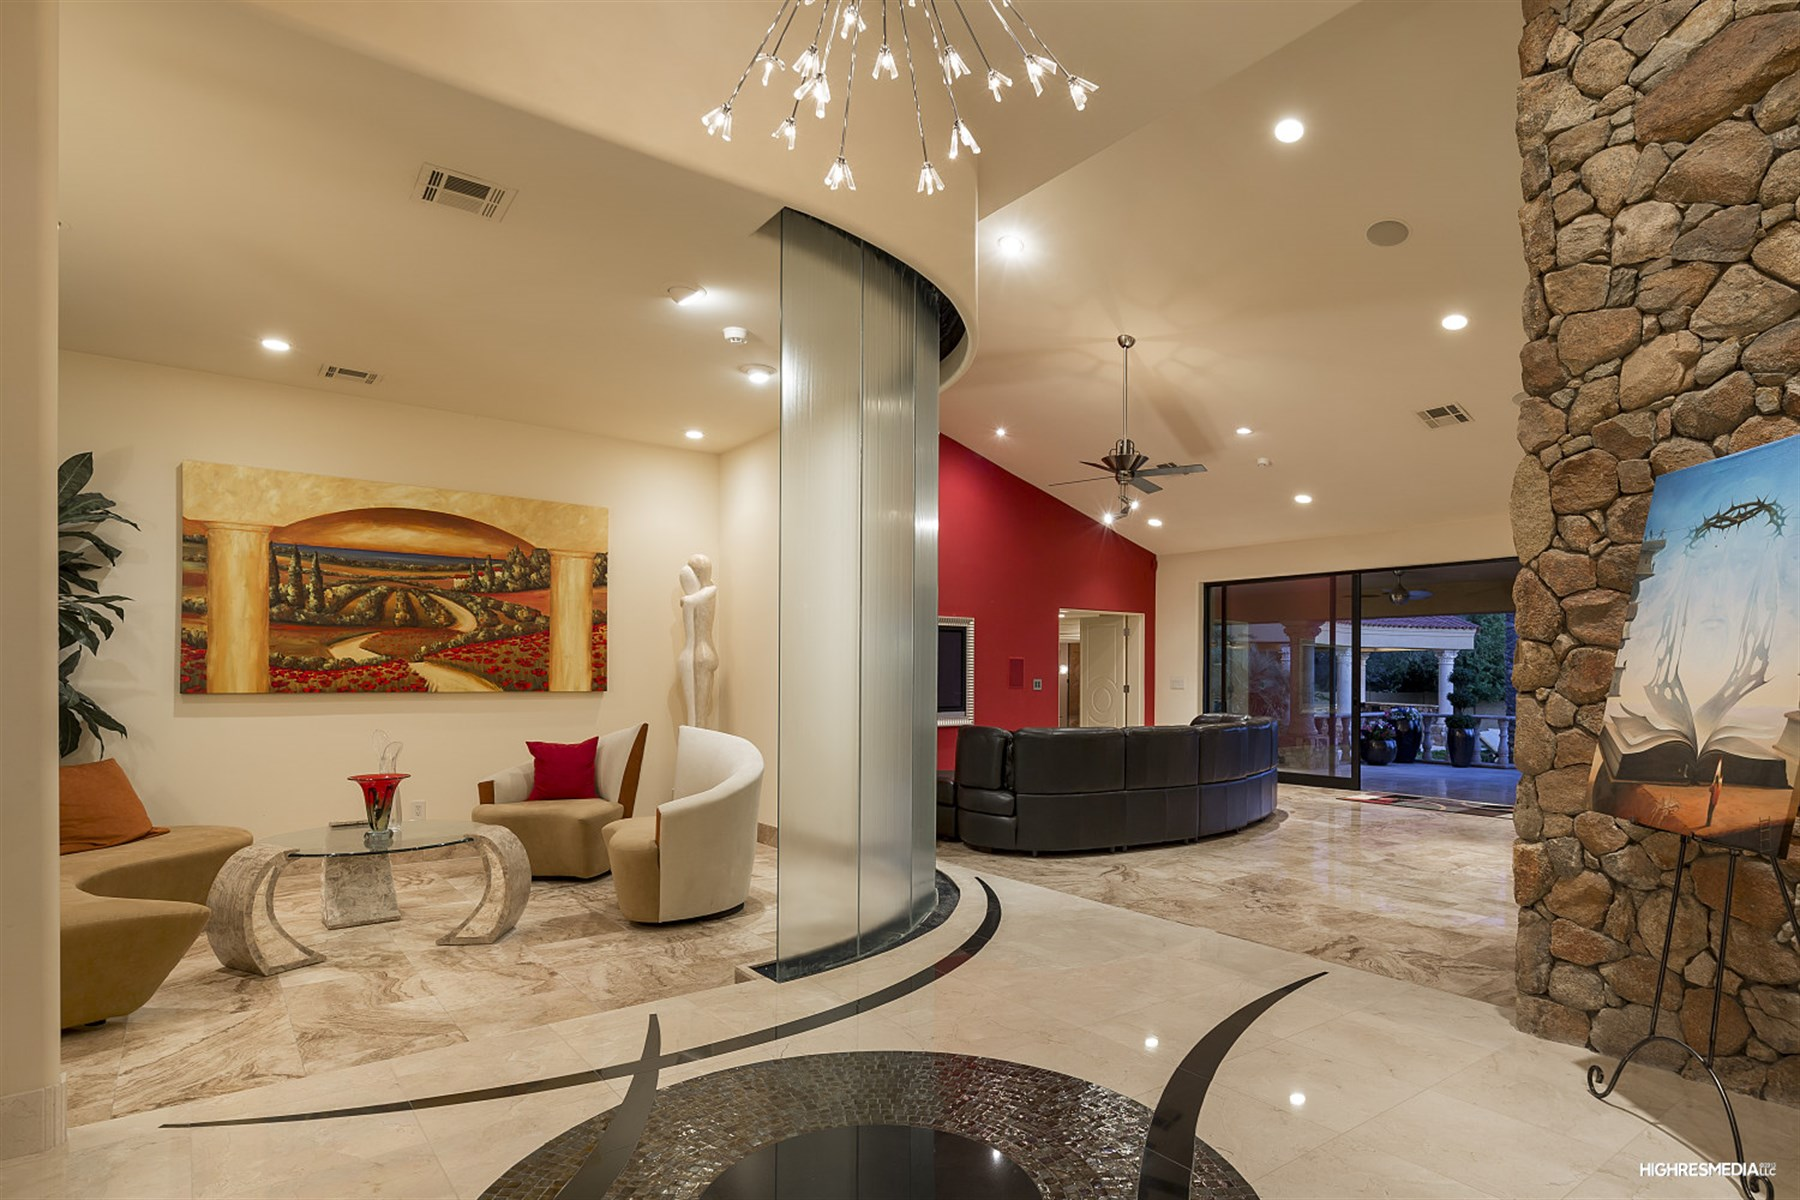 Property For Sale at Sophisticated Contemporary in Cactus Corridor